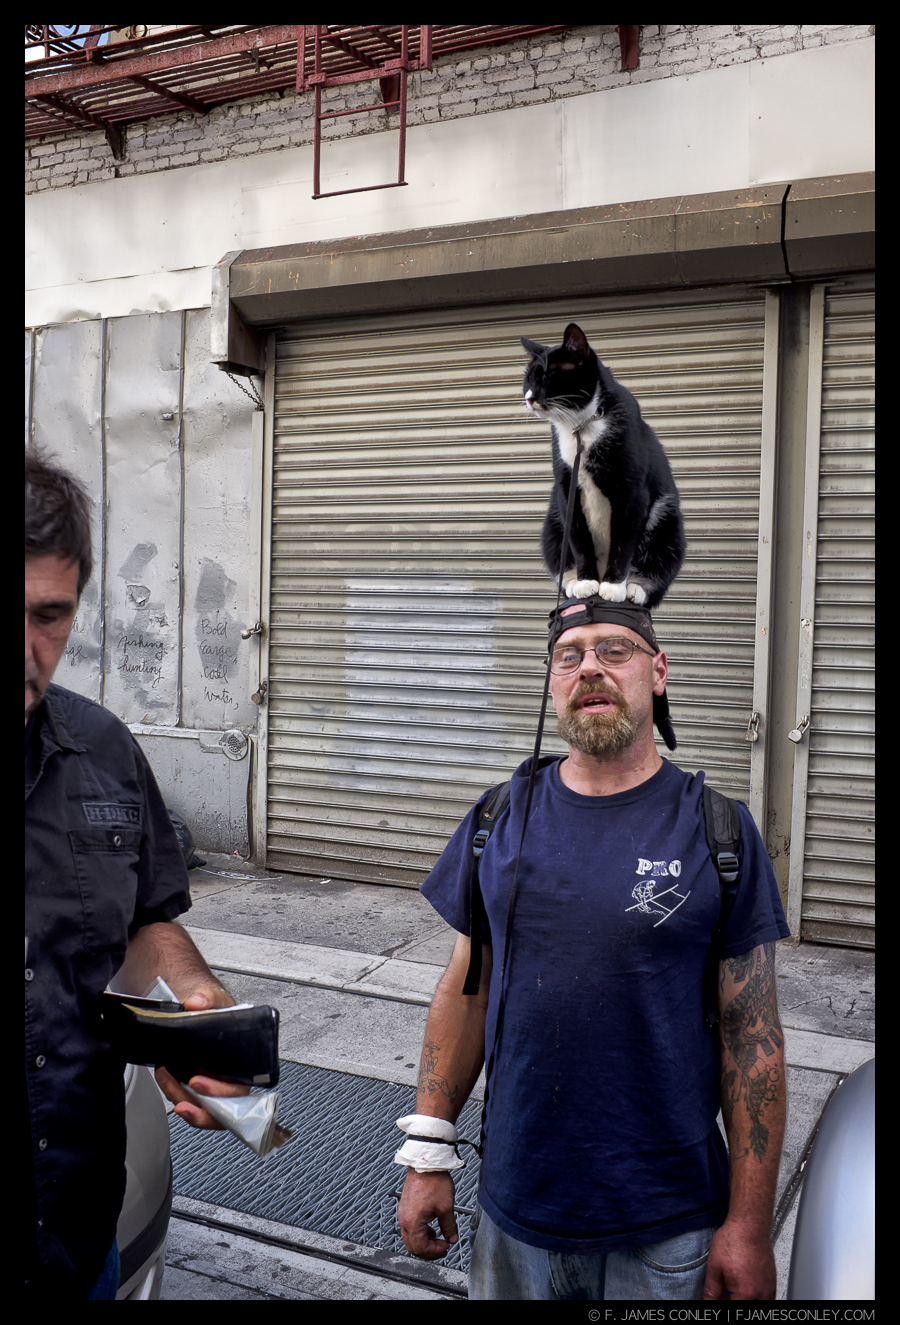 A New Yorker walks the streets with a cat on his head.